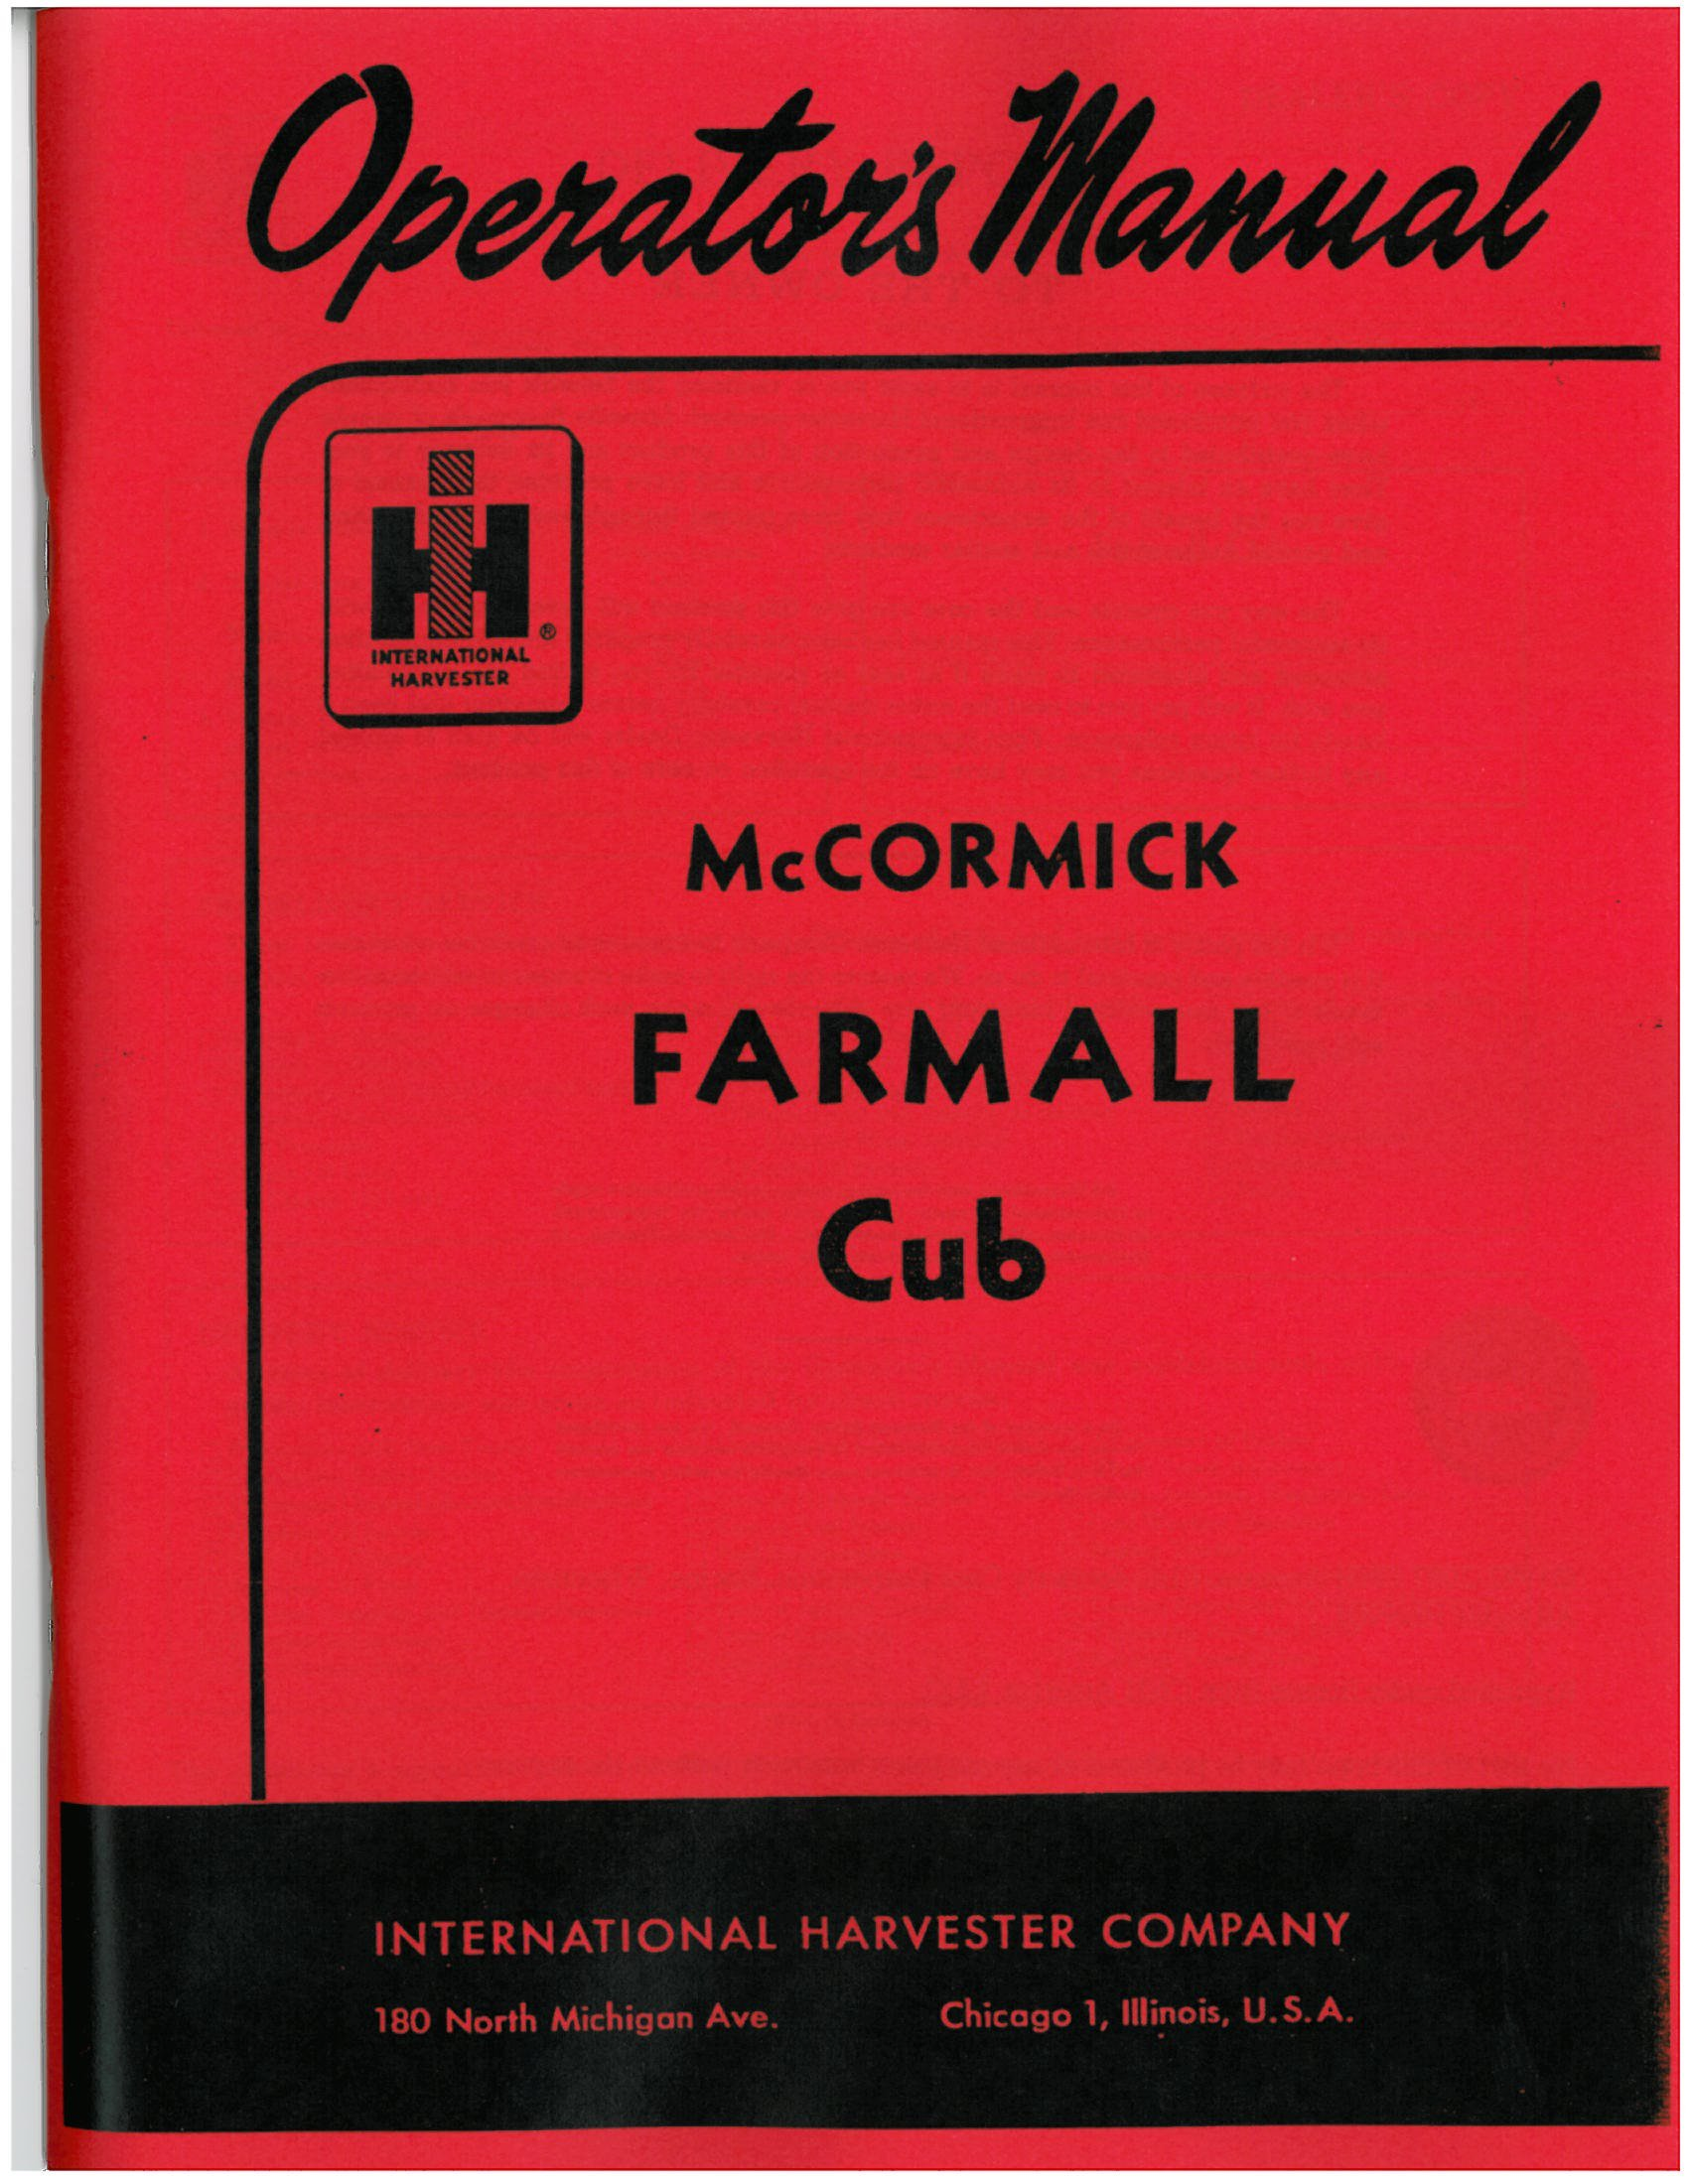 related pictures 1949 farmall cub wiring diagram wiring library farmall cub tractor wiring diagram international farmall cub operator's manual 1947 54 international harvester amazon com